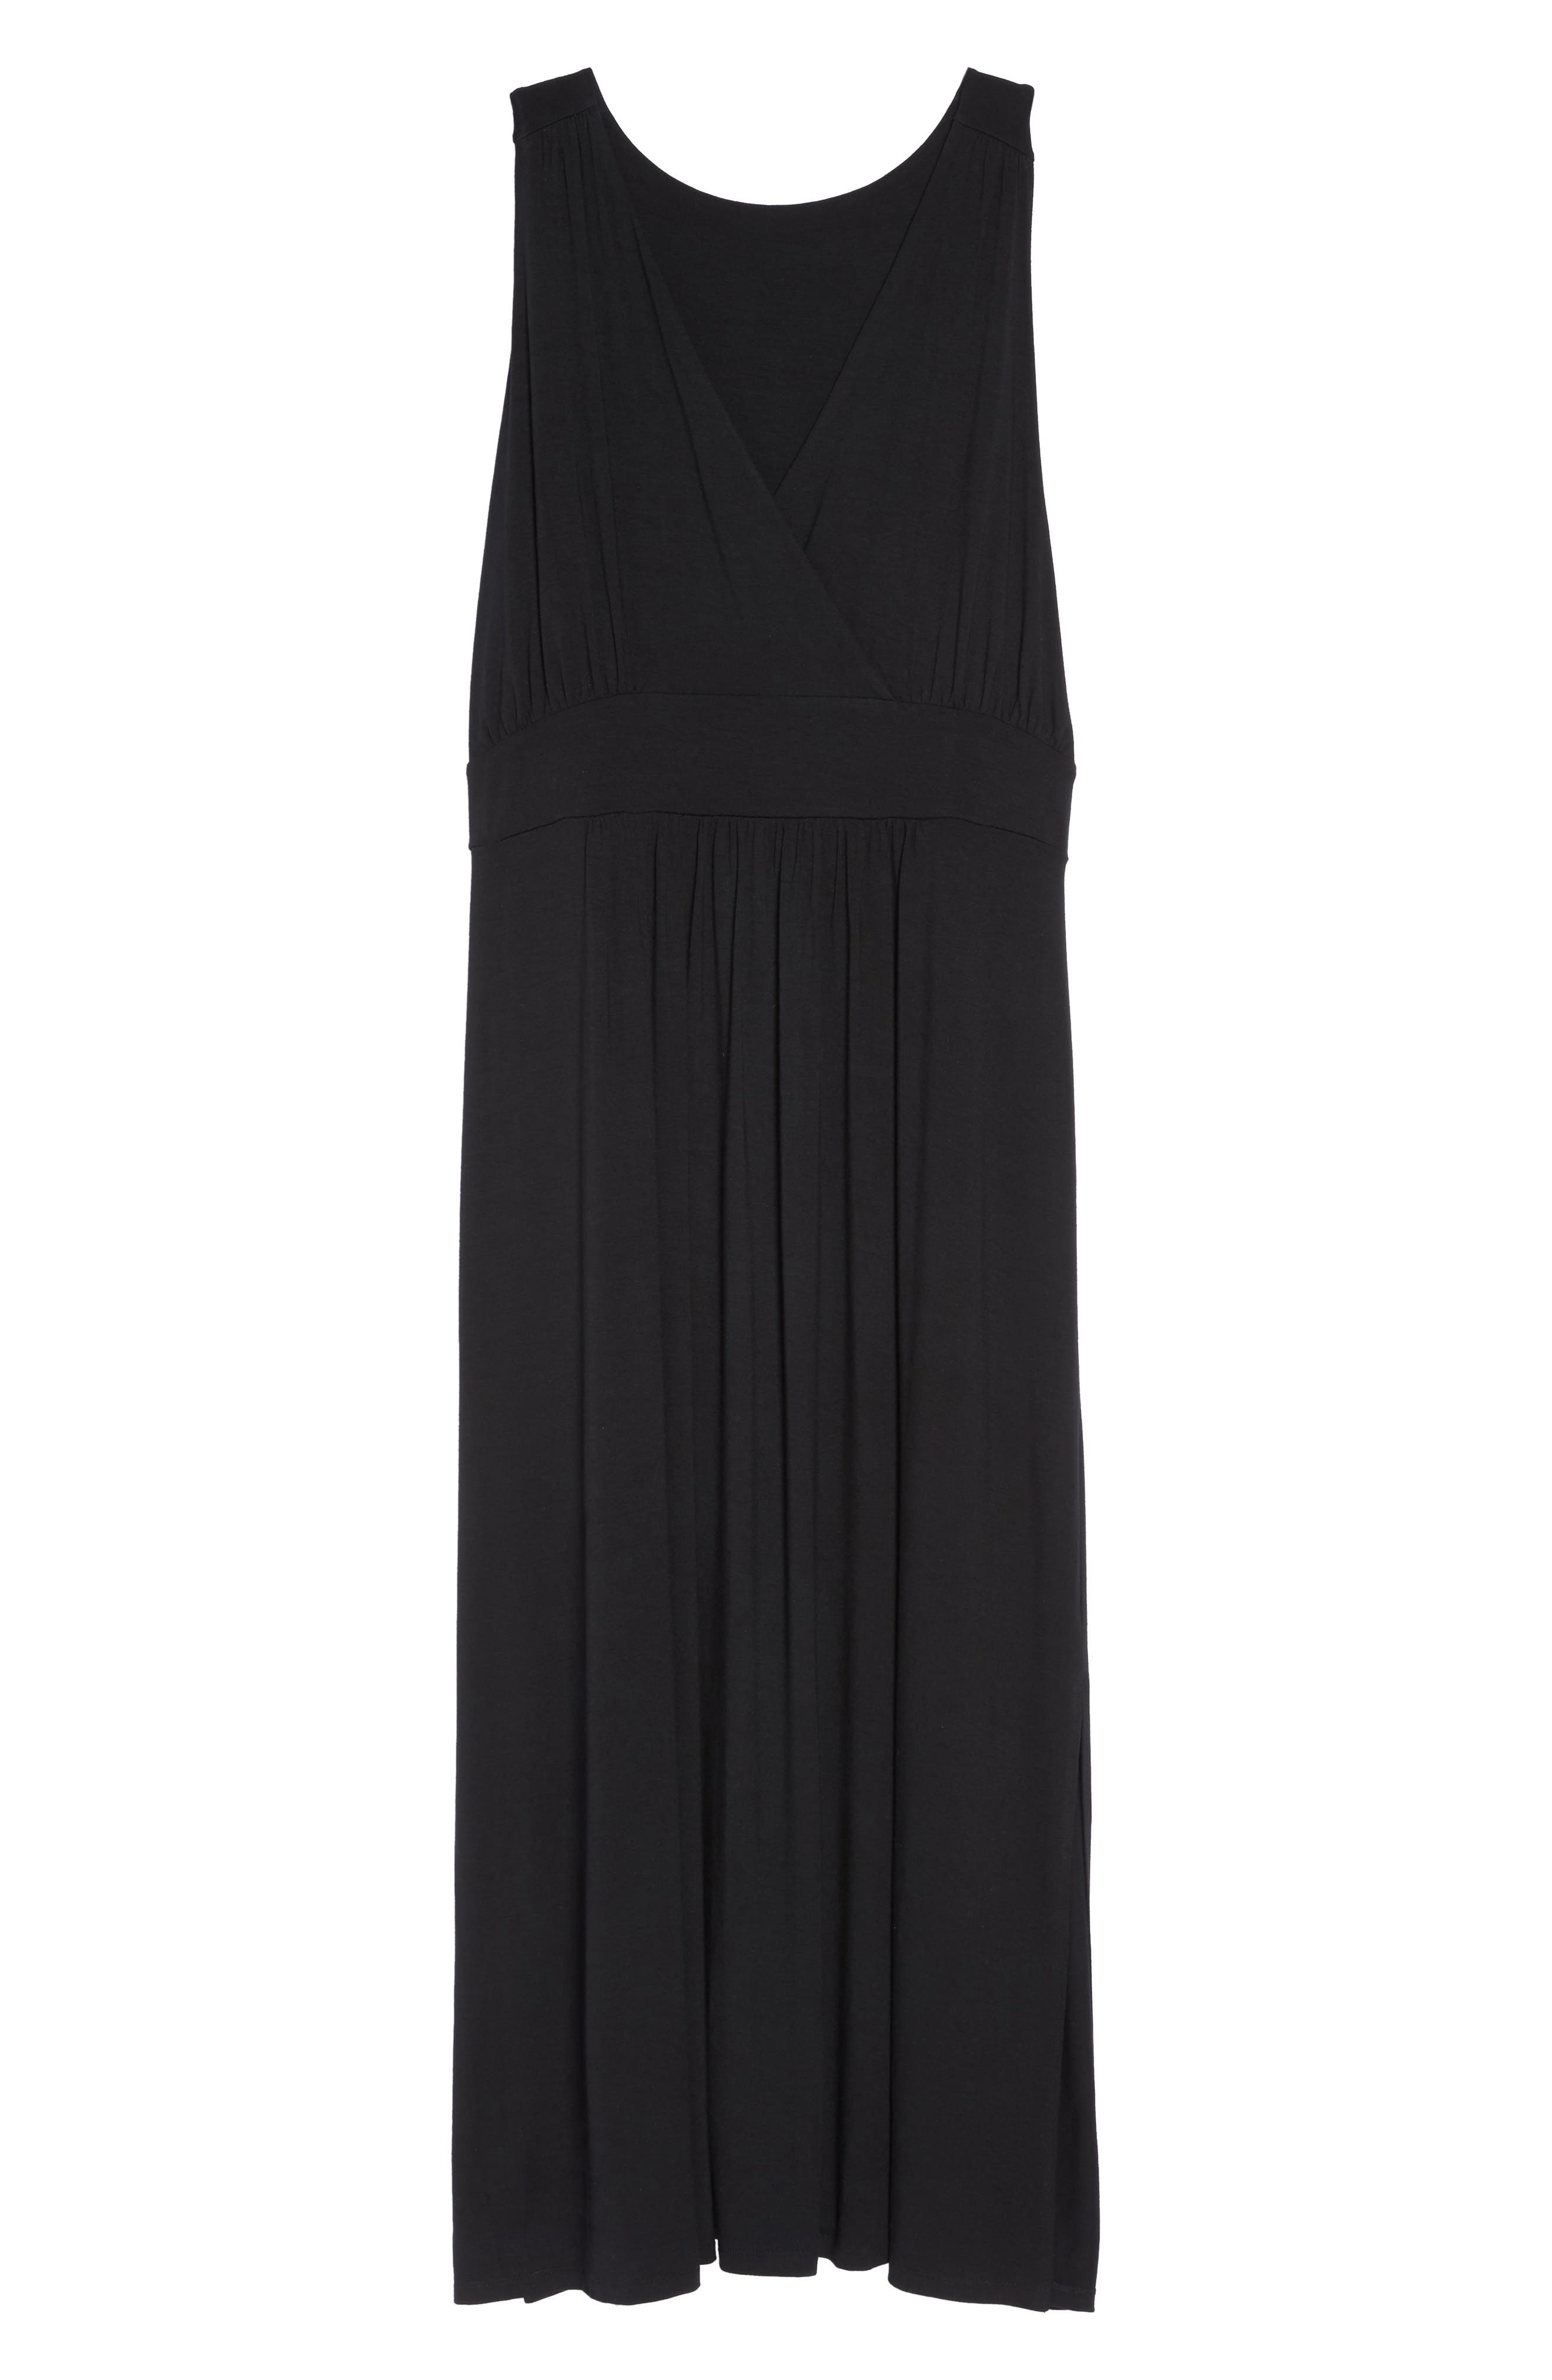 Knit Maxi Dress,                             Alternate thumbnail 7, color,                             001